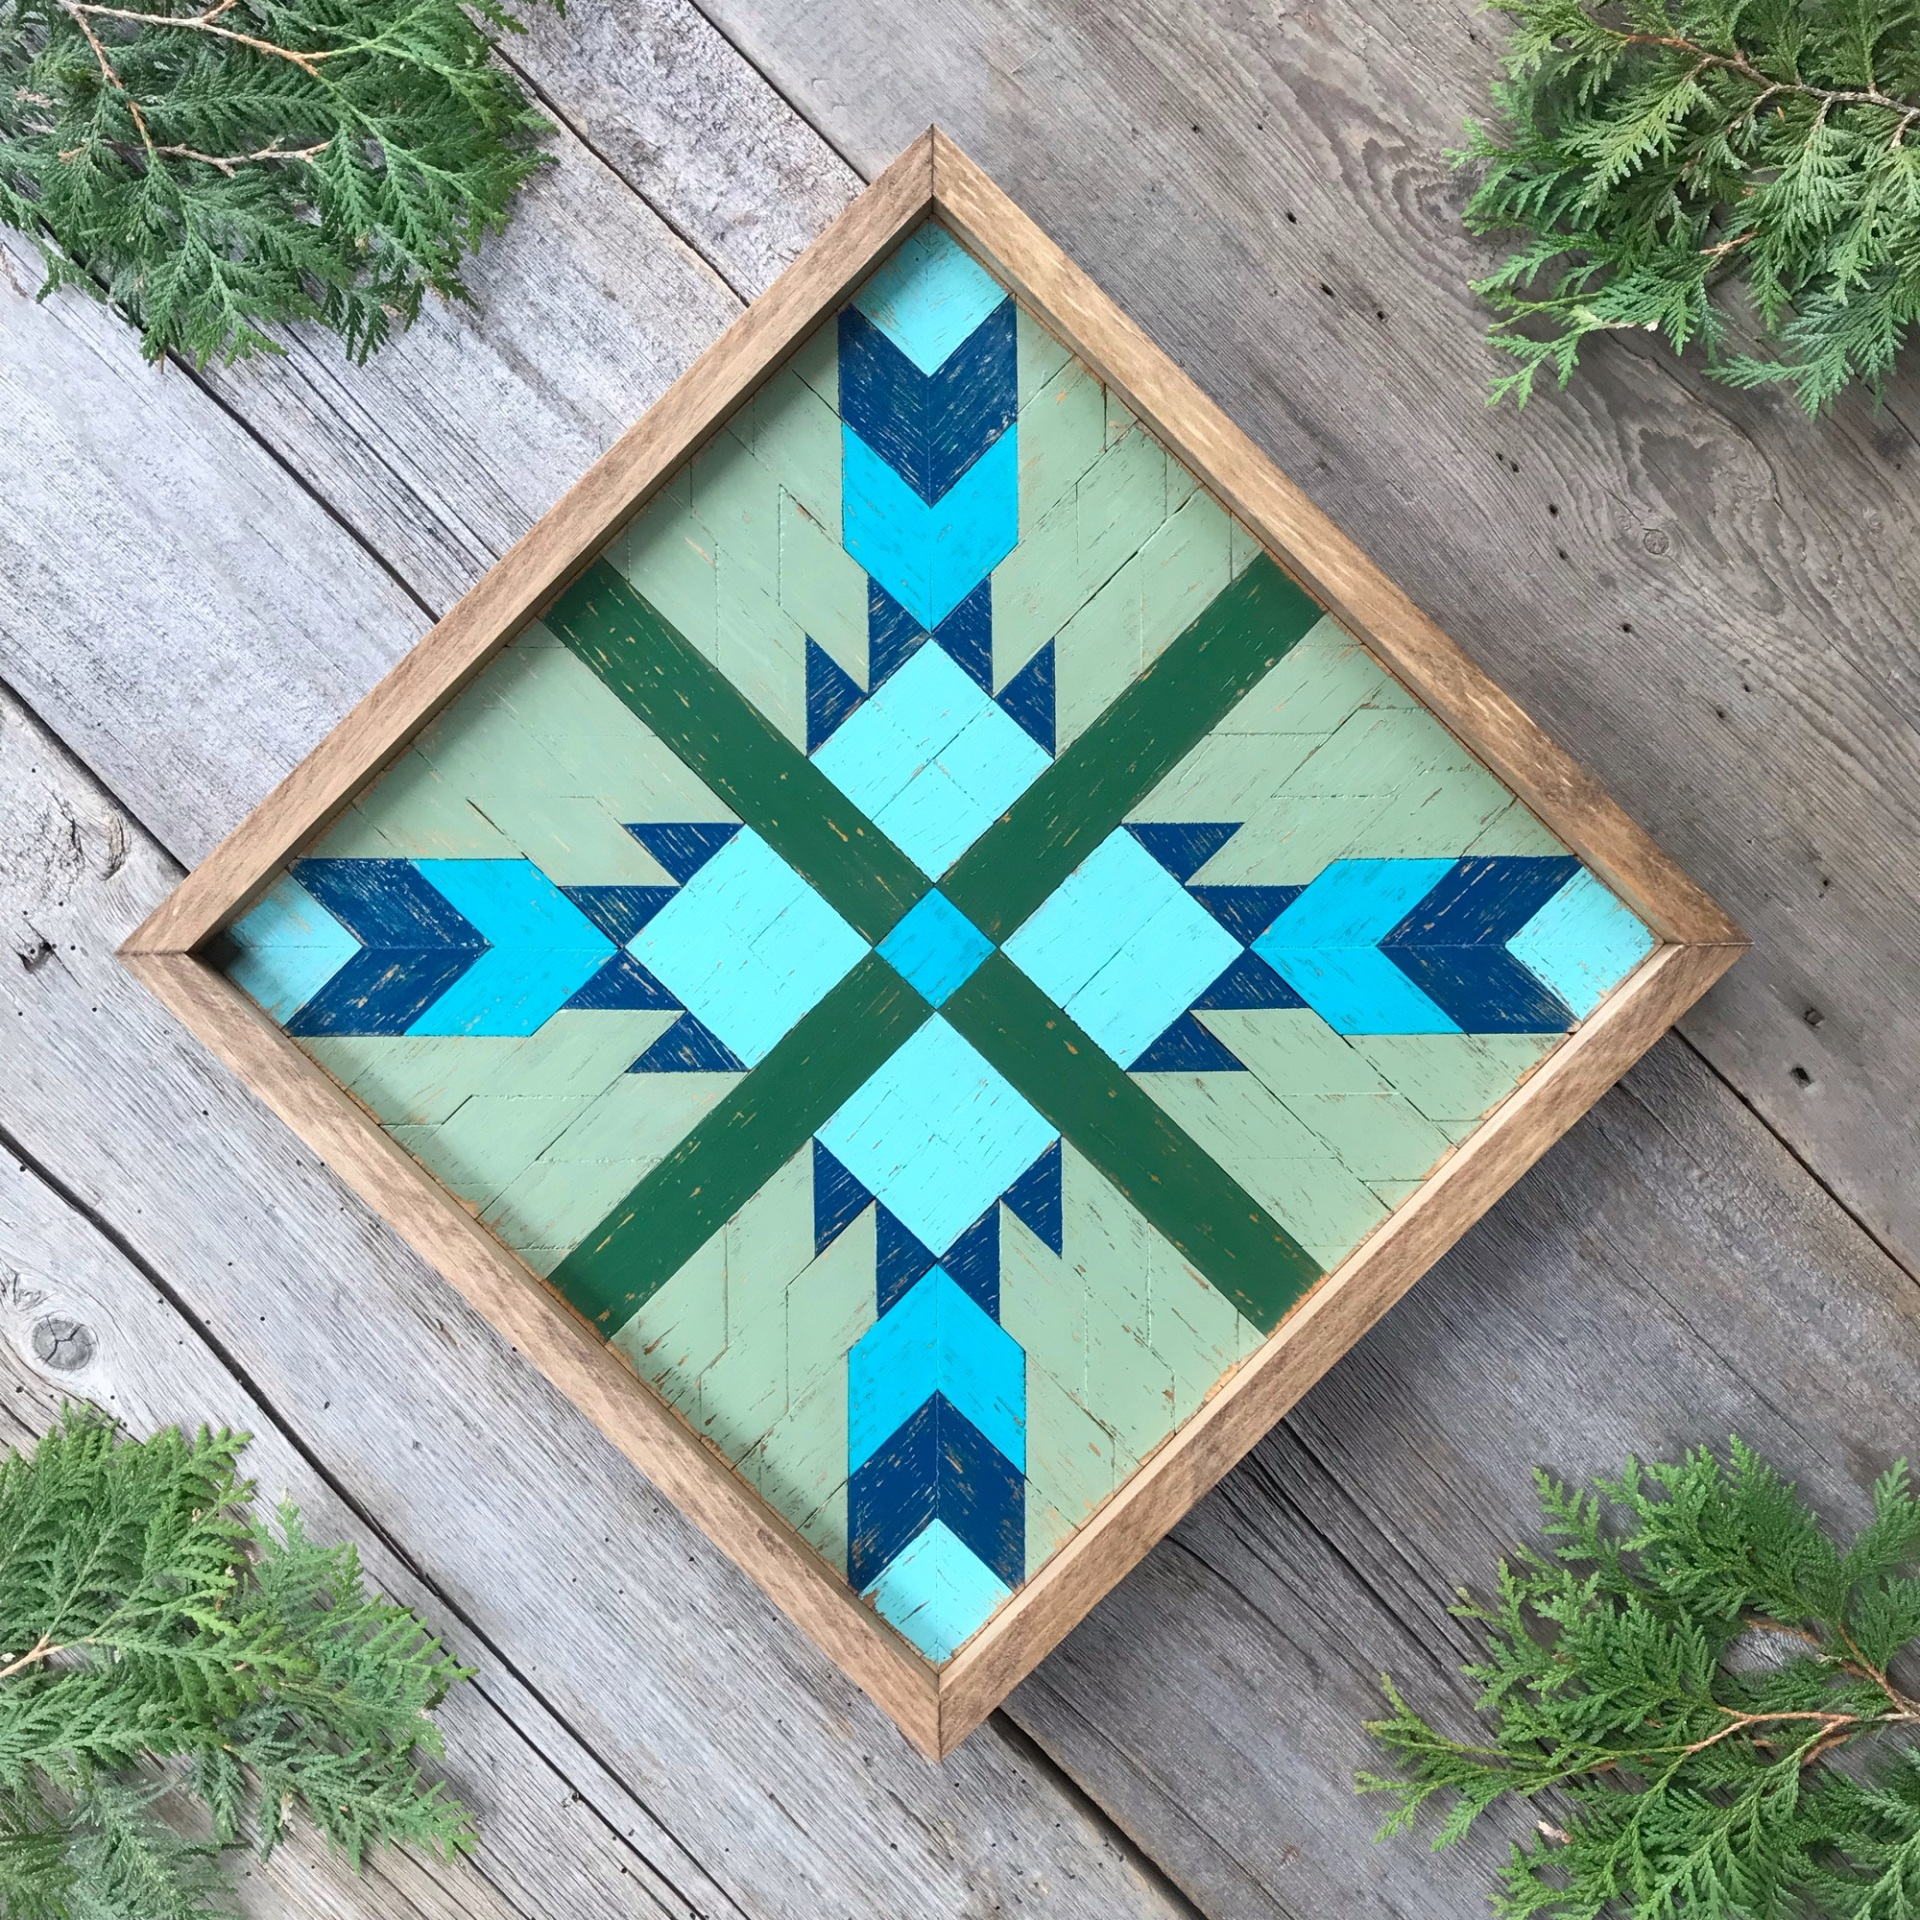 Barn Quilt, Wood Wall Art, Geometric Patterns, Colorful Barn Quilts, Barn Quilt Square